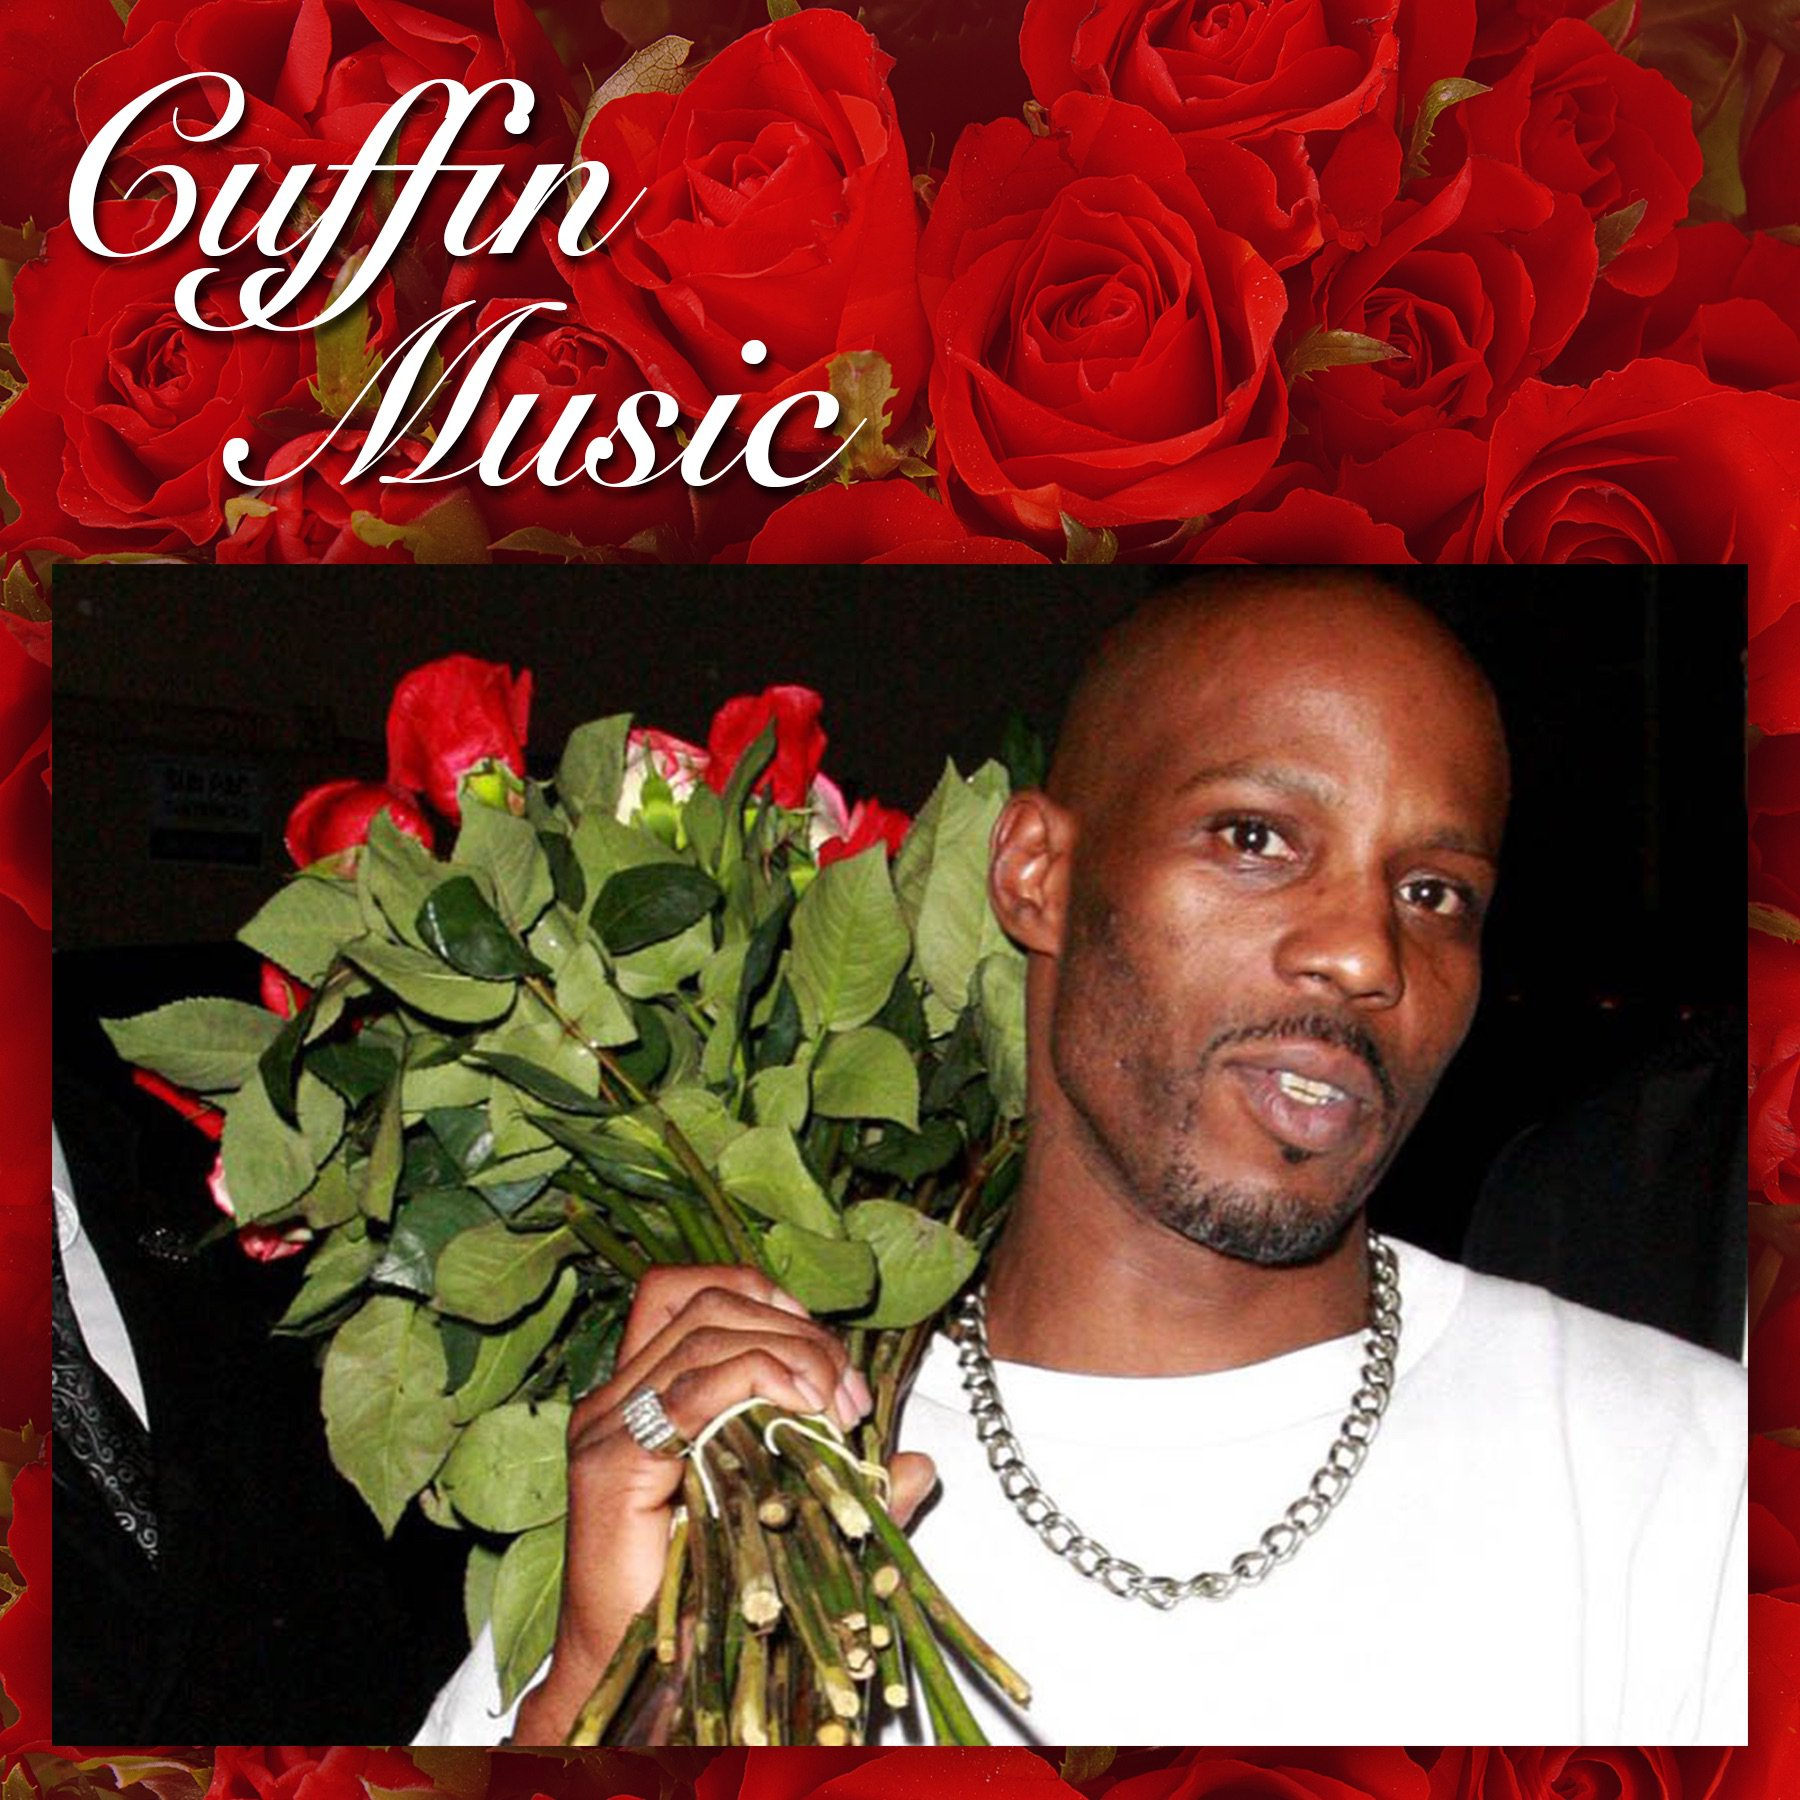 New Music: Cozy Boys – Cuffin' Music (V-Day Mix)